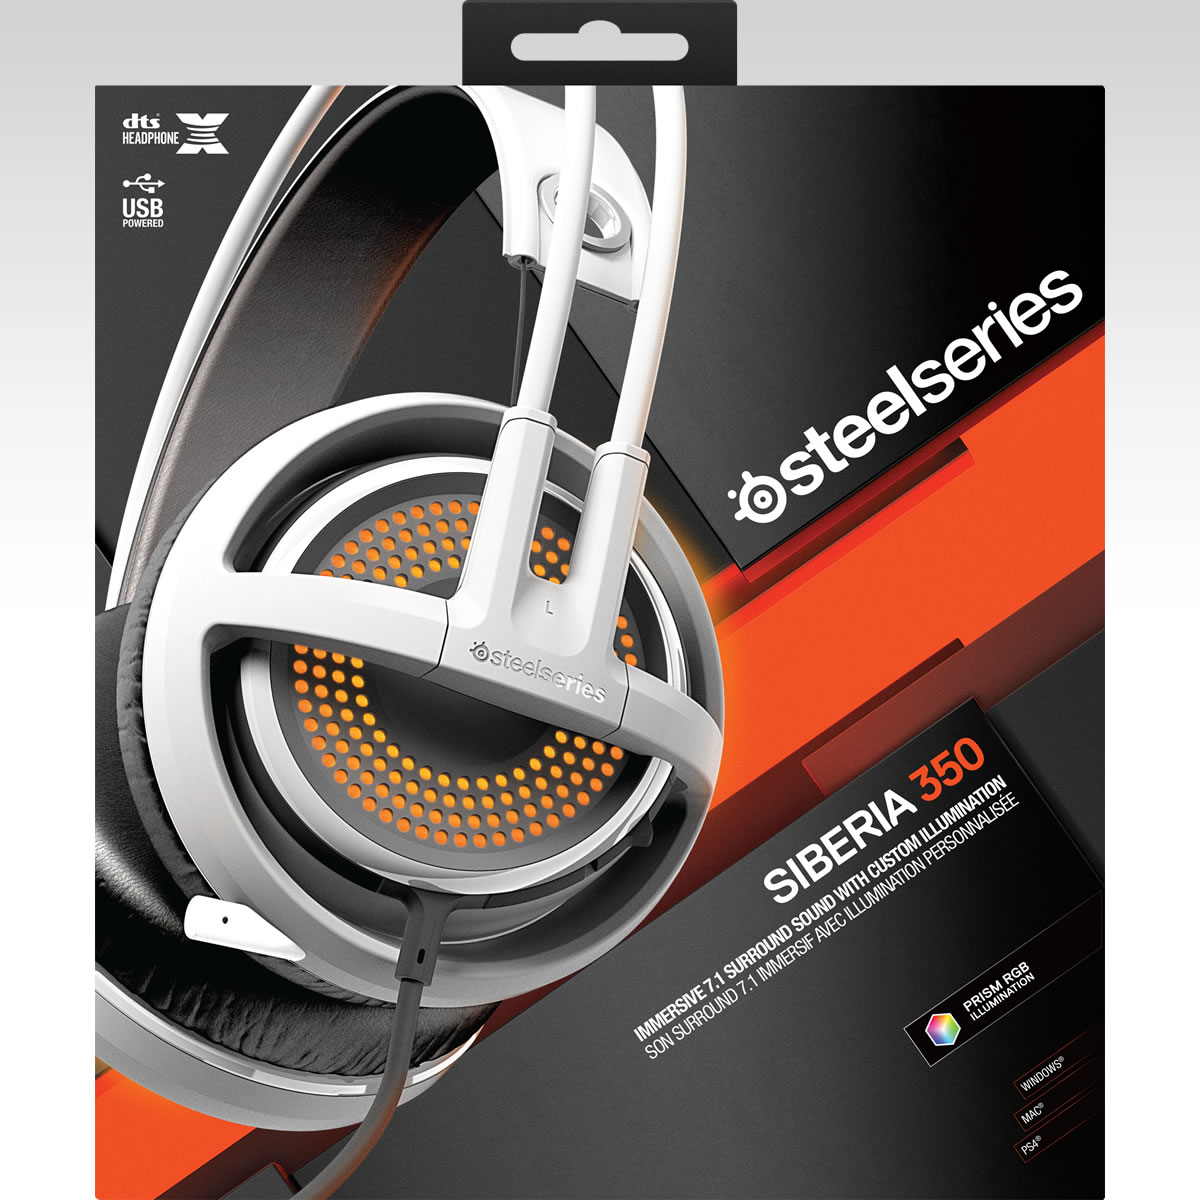 STEELSERIES - HEADSET SIBERIA 350 WHITE 51204 (PC, Mac, PS4)